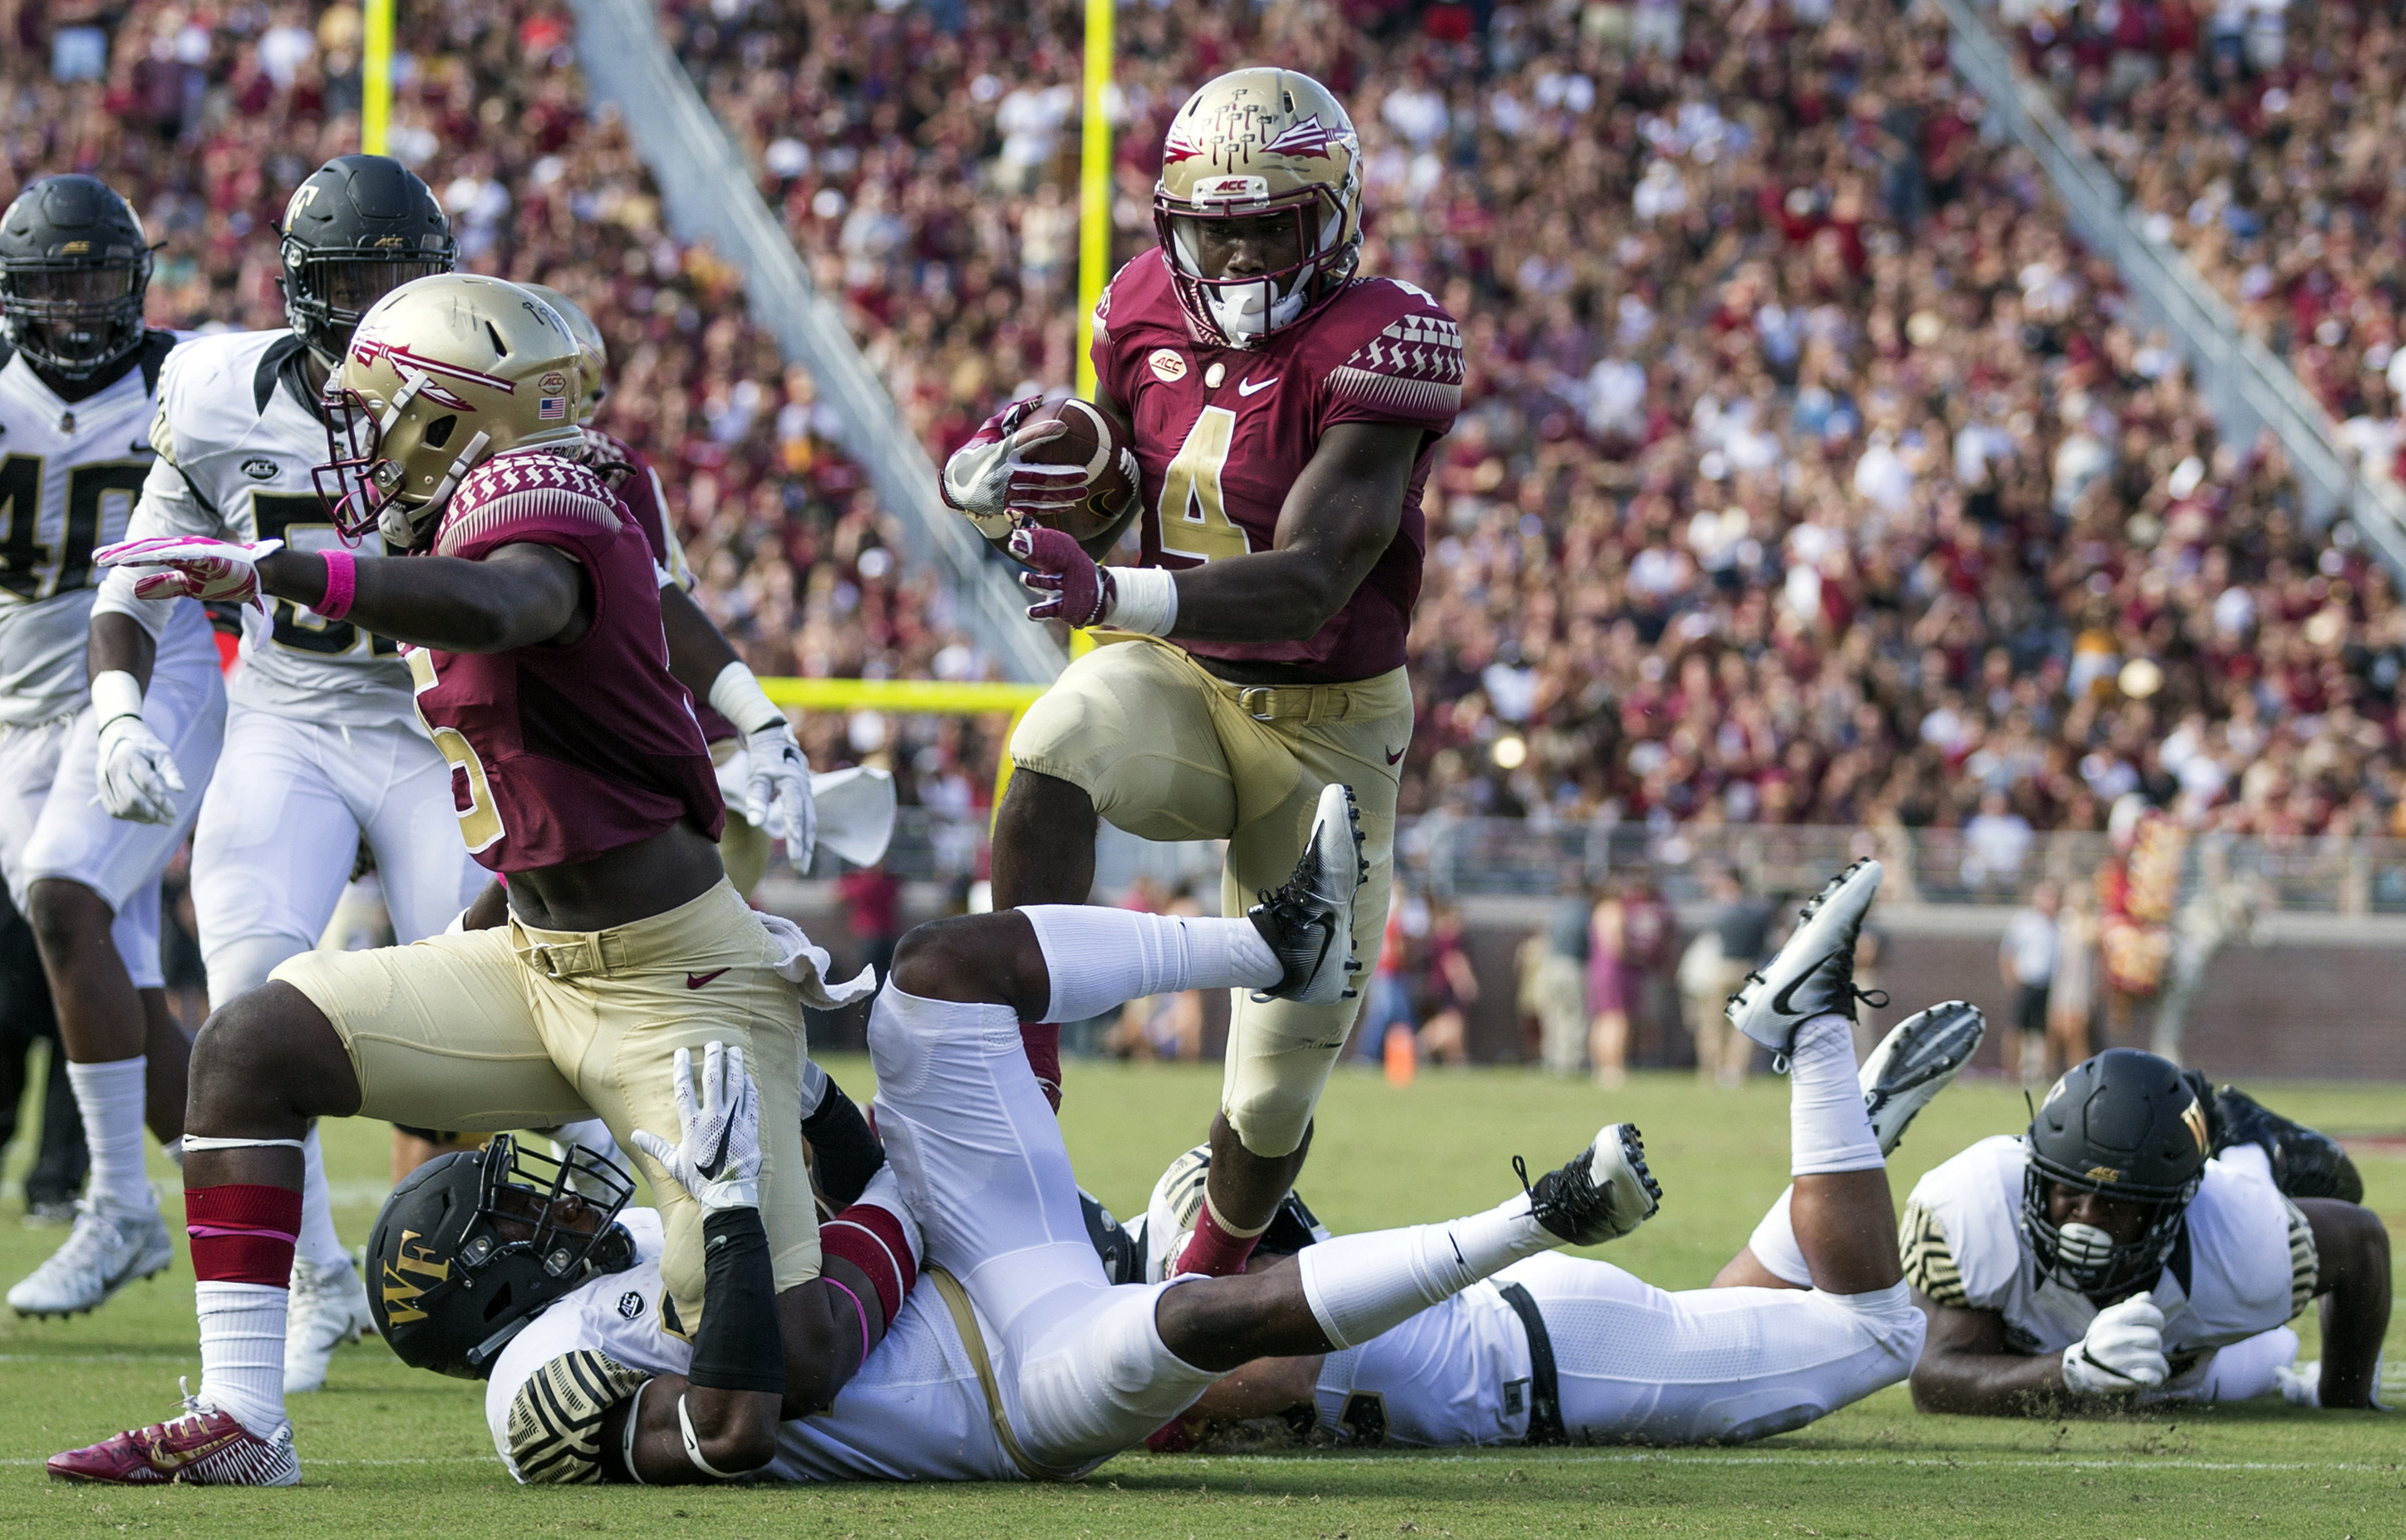 FILE - In this Saturday, Oct. 15, 2016, photo, Florida State running back Dalvin Cook runs against Wake Forest in the first half of an NCAA college football game in Tallahassee, Fla. Cook and Clemson quarterback Deshaun Watson have the potential to make a